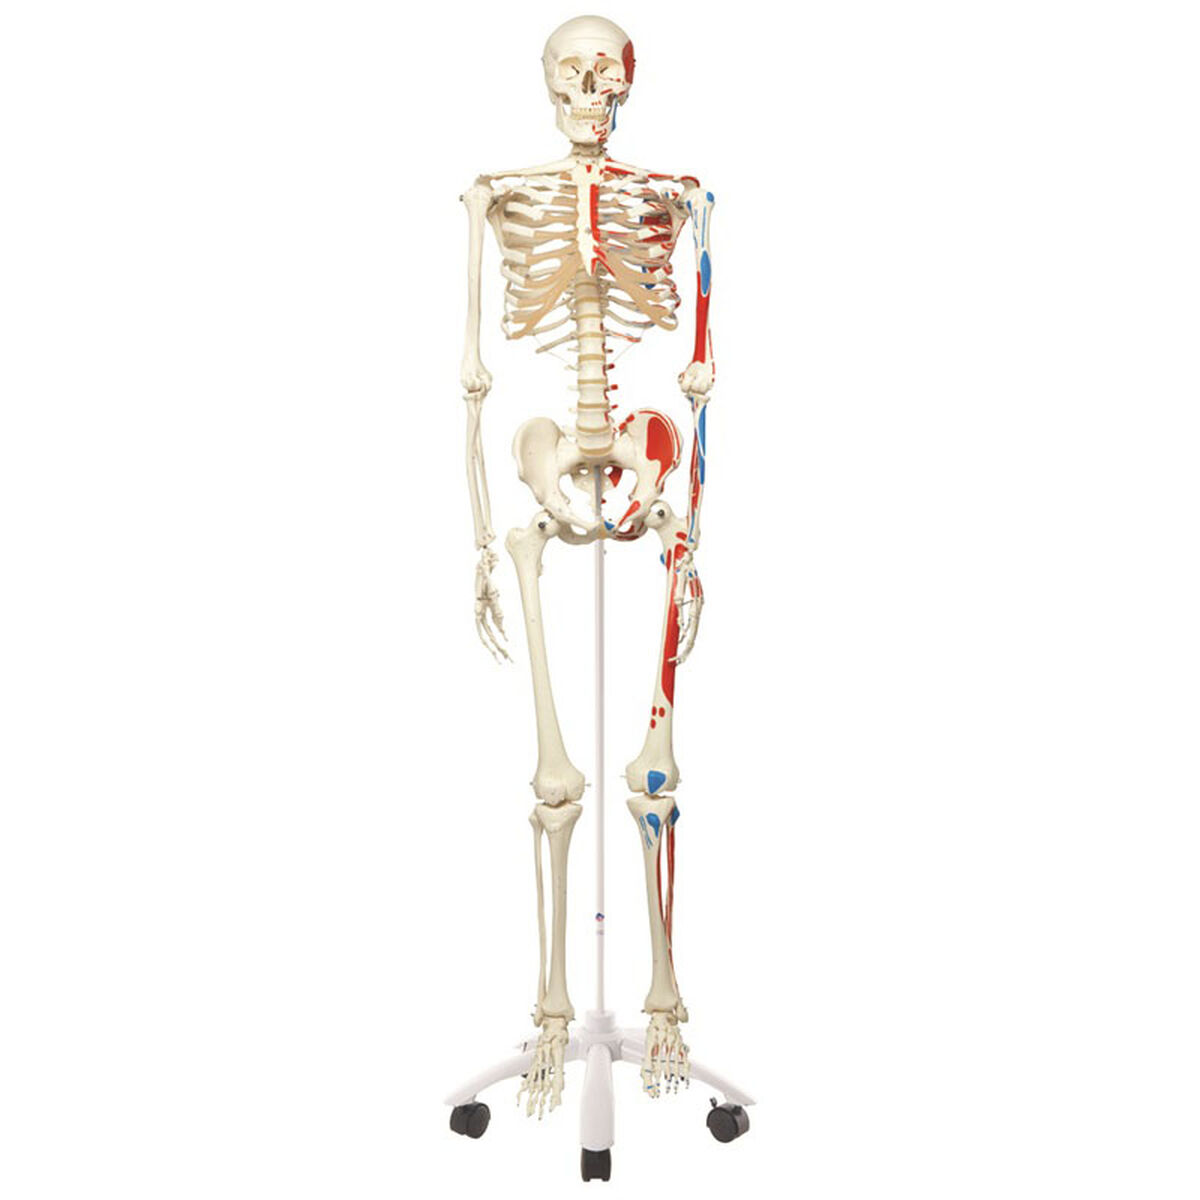 Muscle Skeleton Roller Stand 12-4501 | Bizchair.com